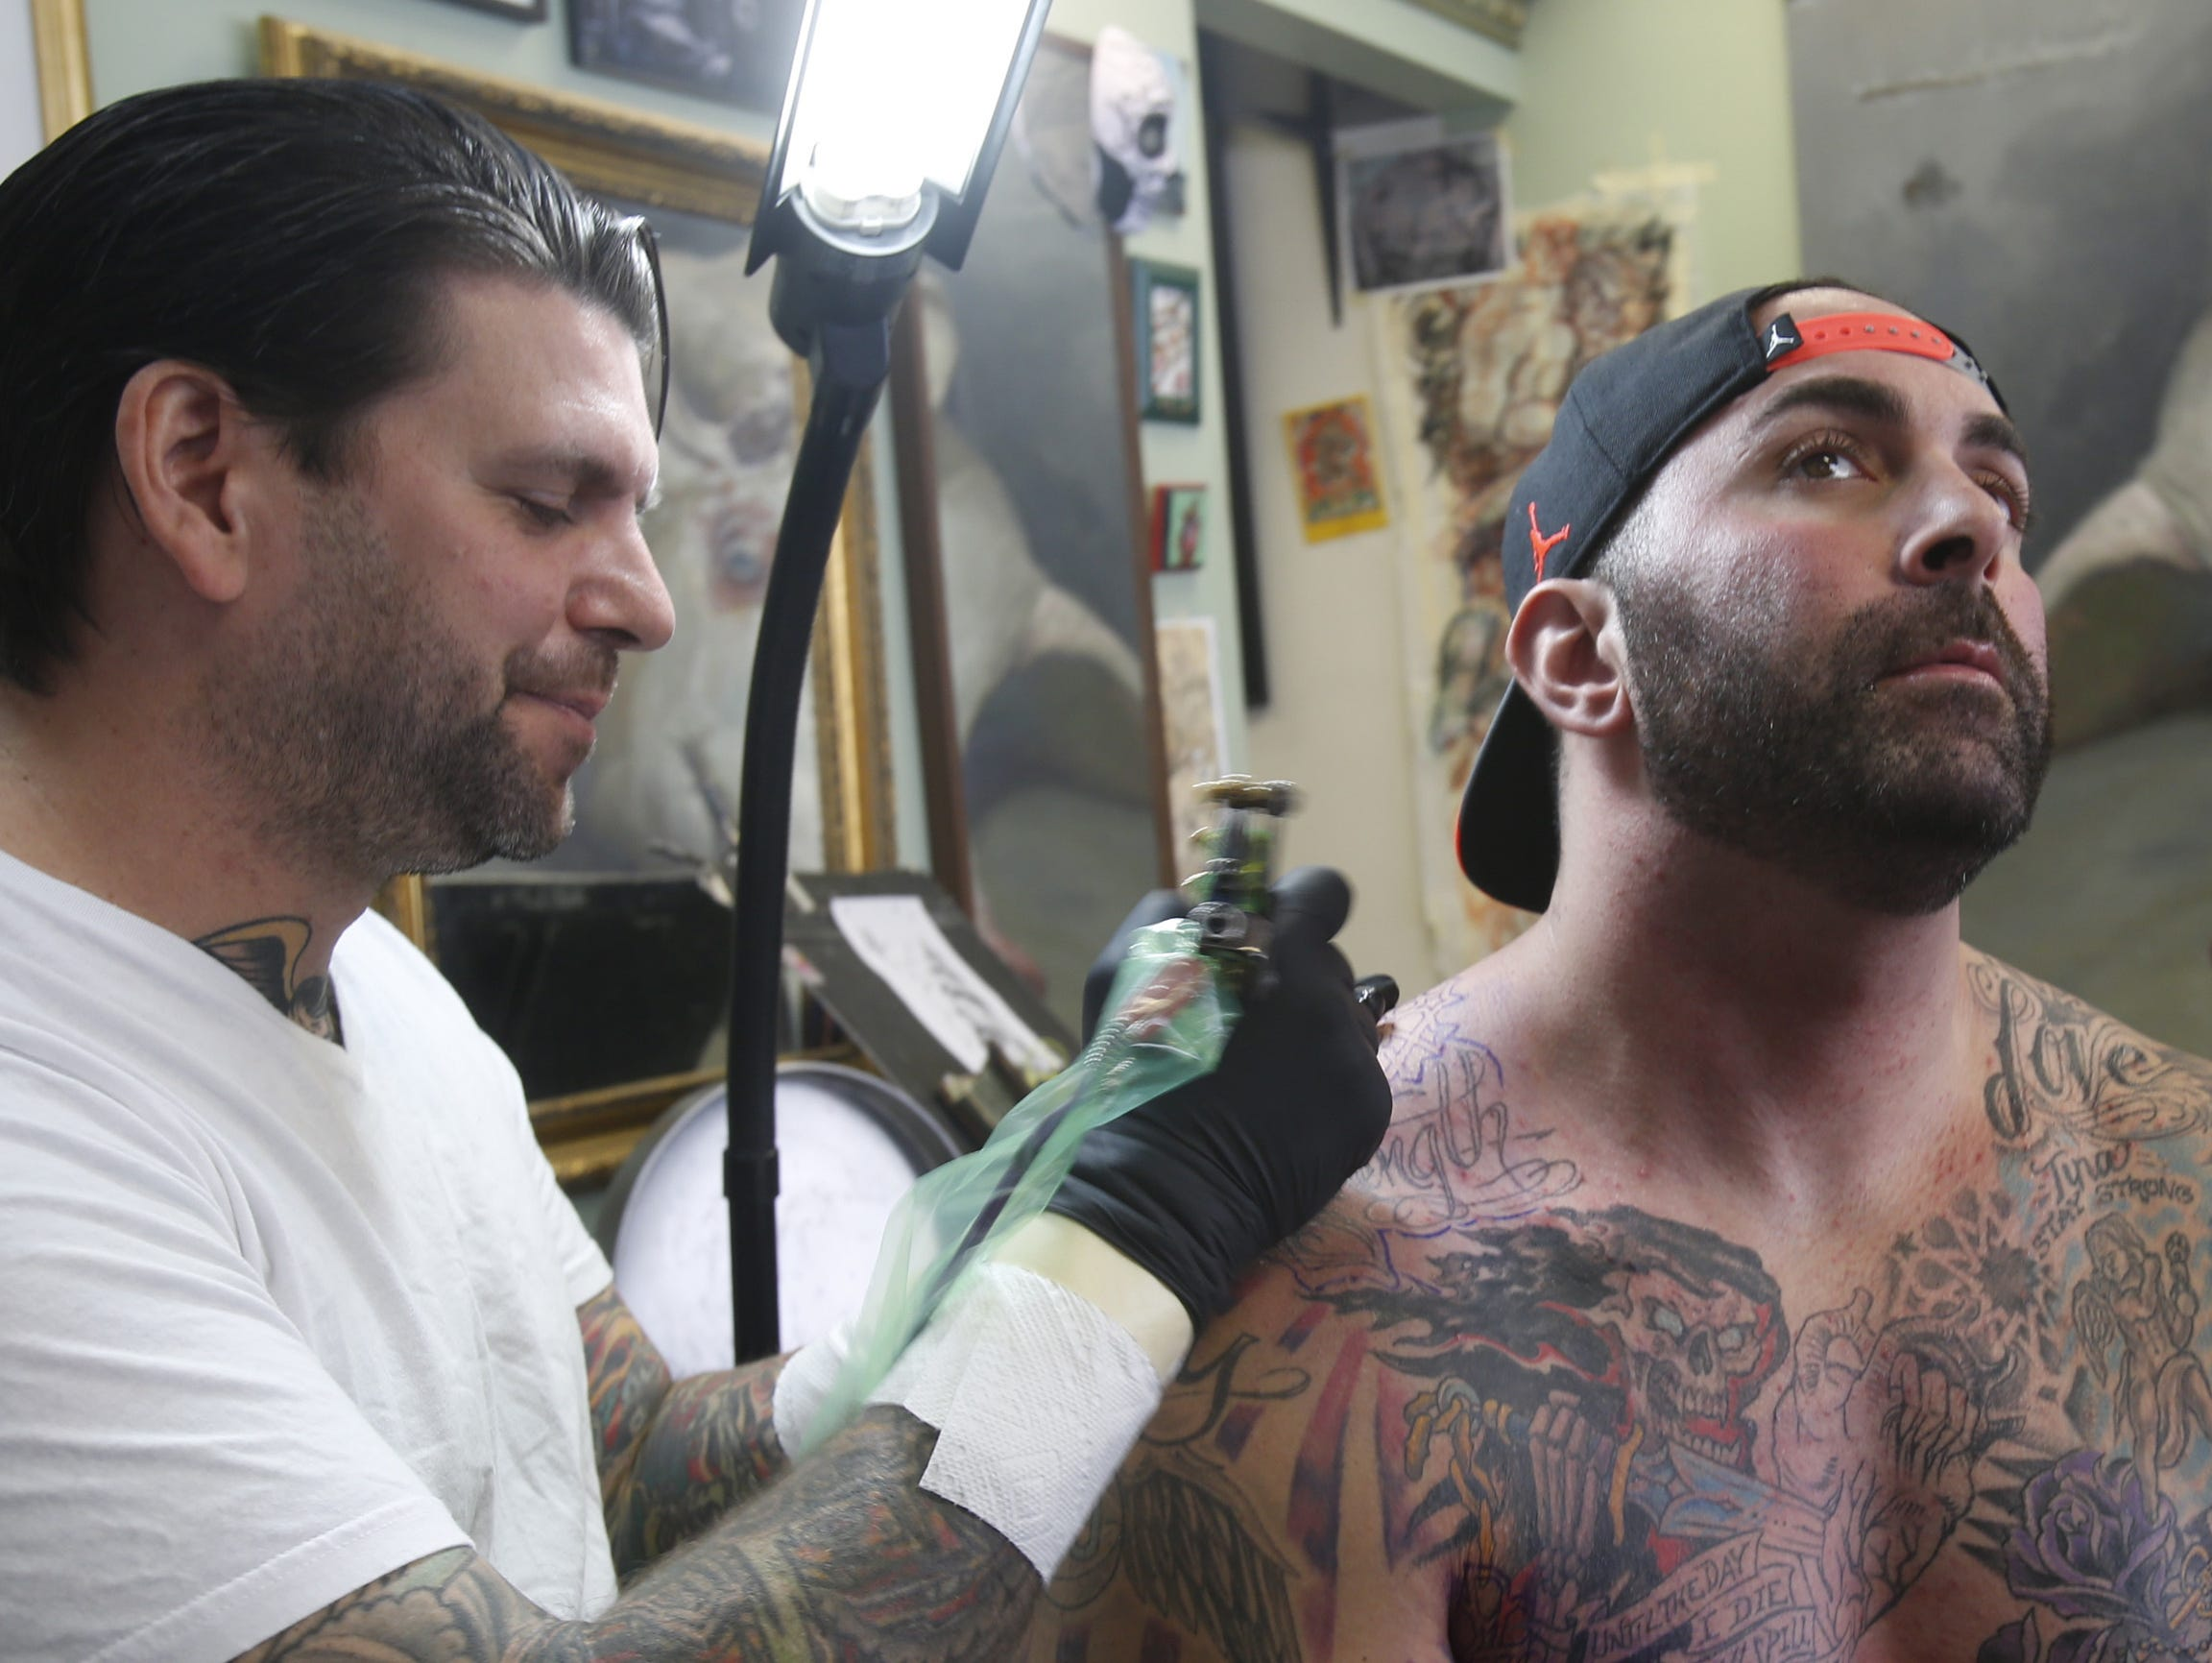 J.R. Maloney, owner of Vanguard Tattoo of Nyack, works on a memorial sleeve for Michael Sayegh of Thiells. The sleeve is principally in honor or Sayegh?s sister who died of cancer as well as other family members. J.R. Maloney, owner of Vanguard Tattoo of Nyack, works on a memorial sleeve for Michael Sayegh of Thiells on Oct. 30, 2014. The sleeve is principally in honor or Sayegh's sister who died of cancer as well as other family members.